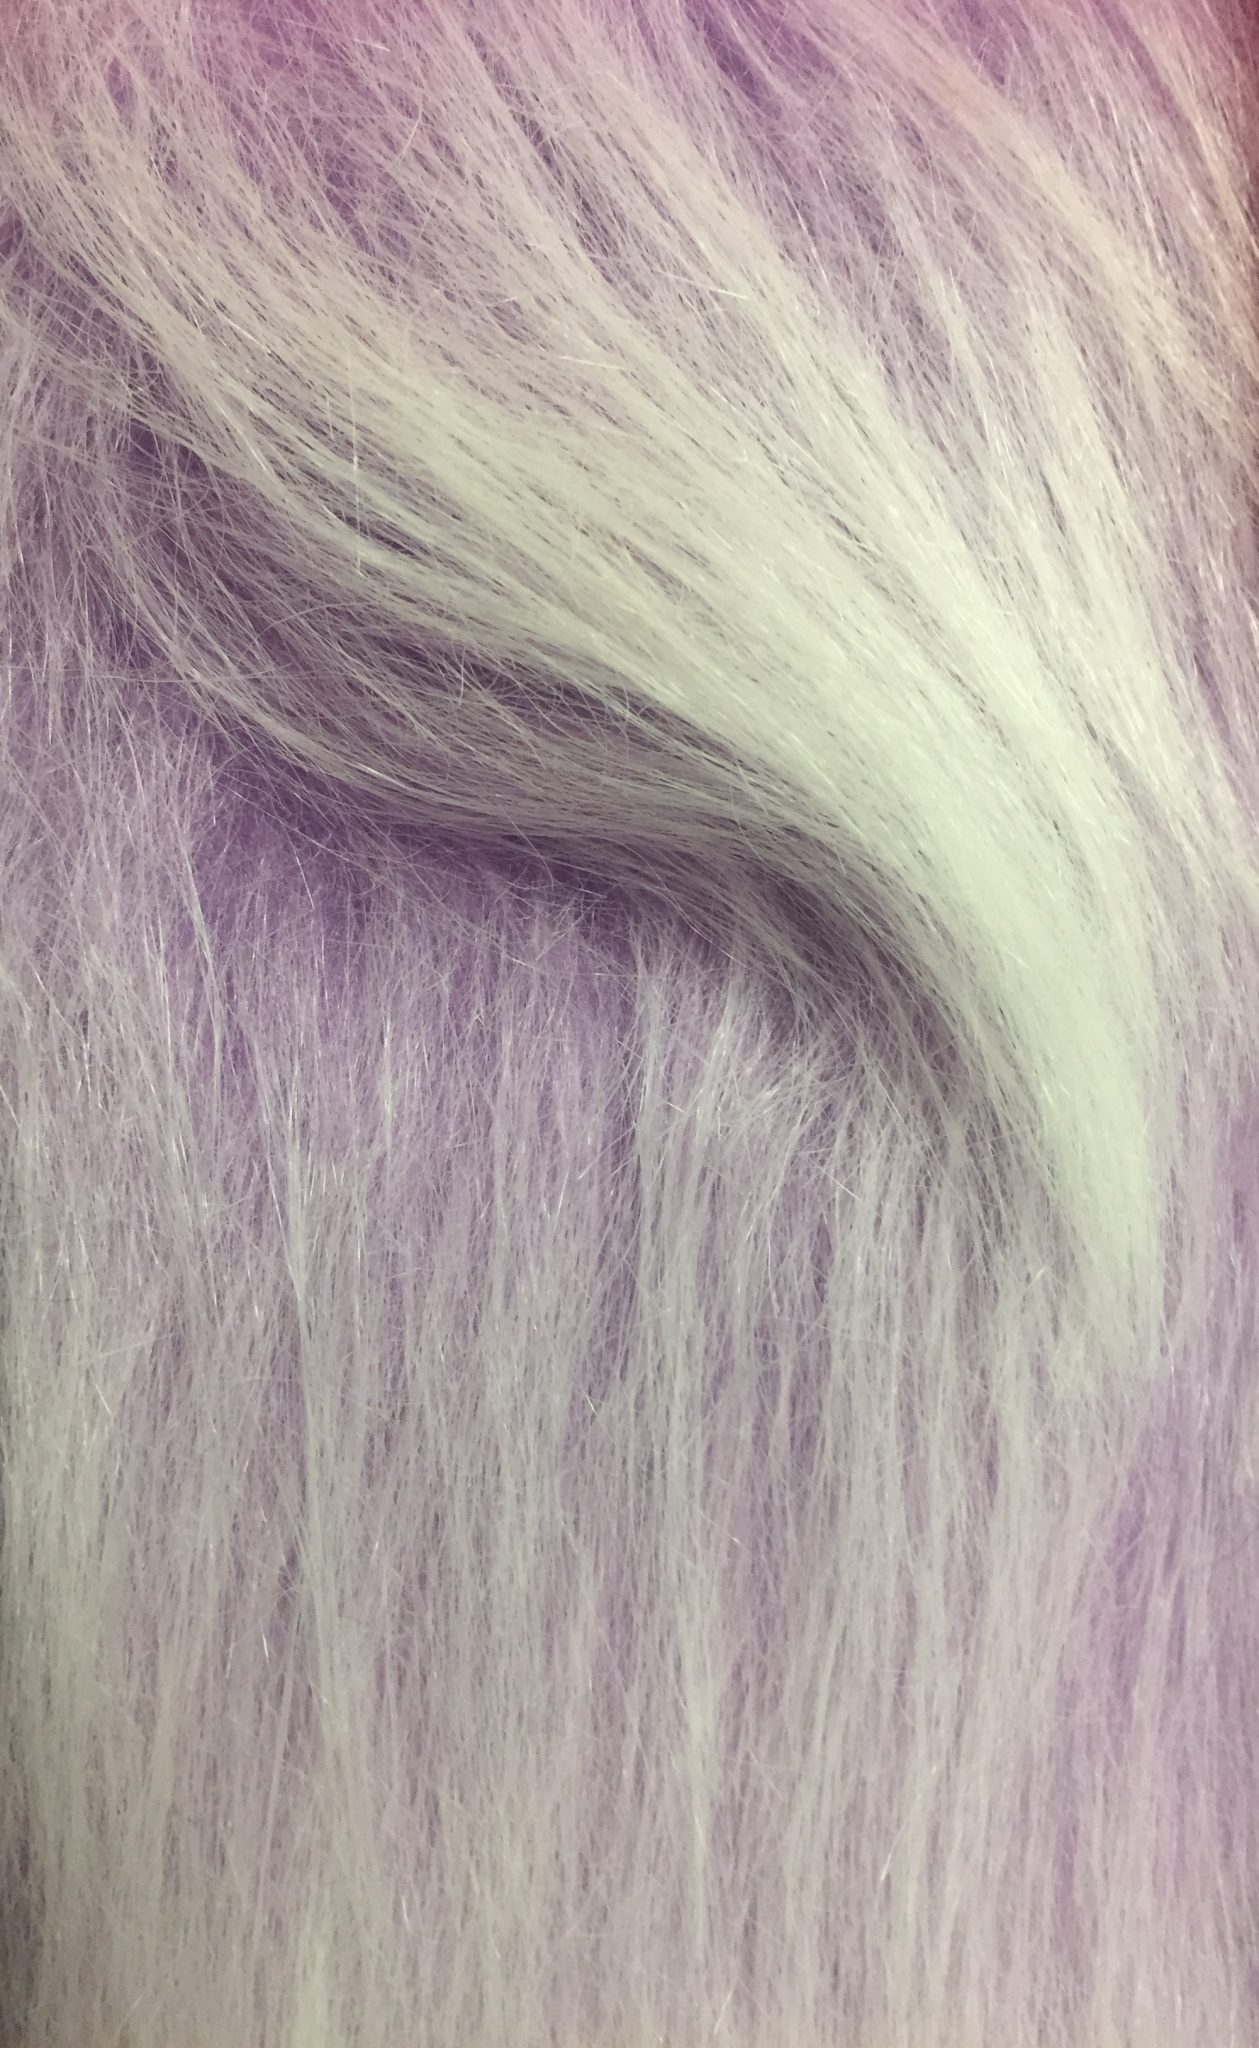 c721327c49b Low Price Heliotrope Purple Frost Longhaired Faux Fur - AC356-Heliotrope  Frost